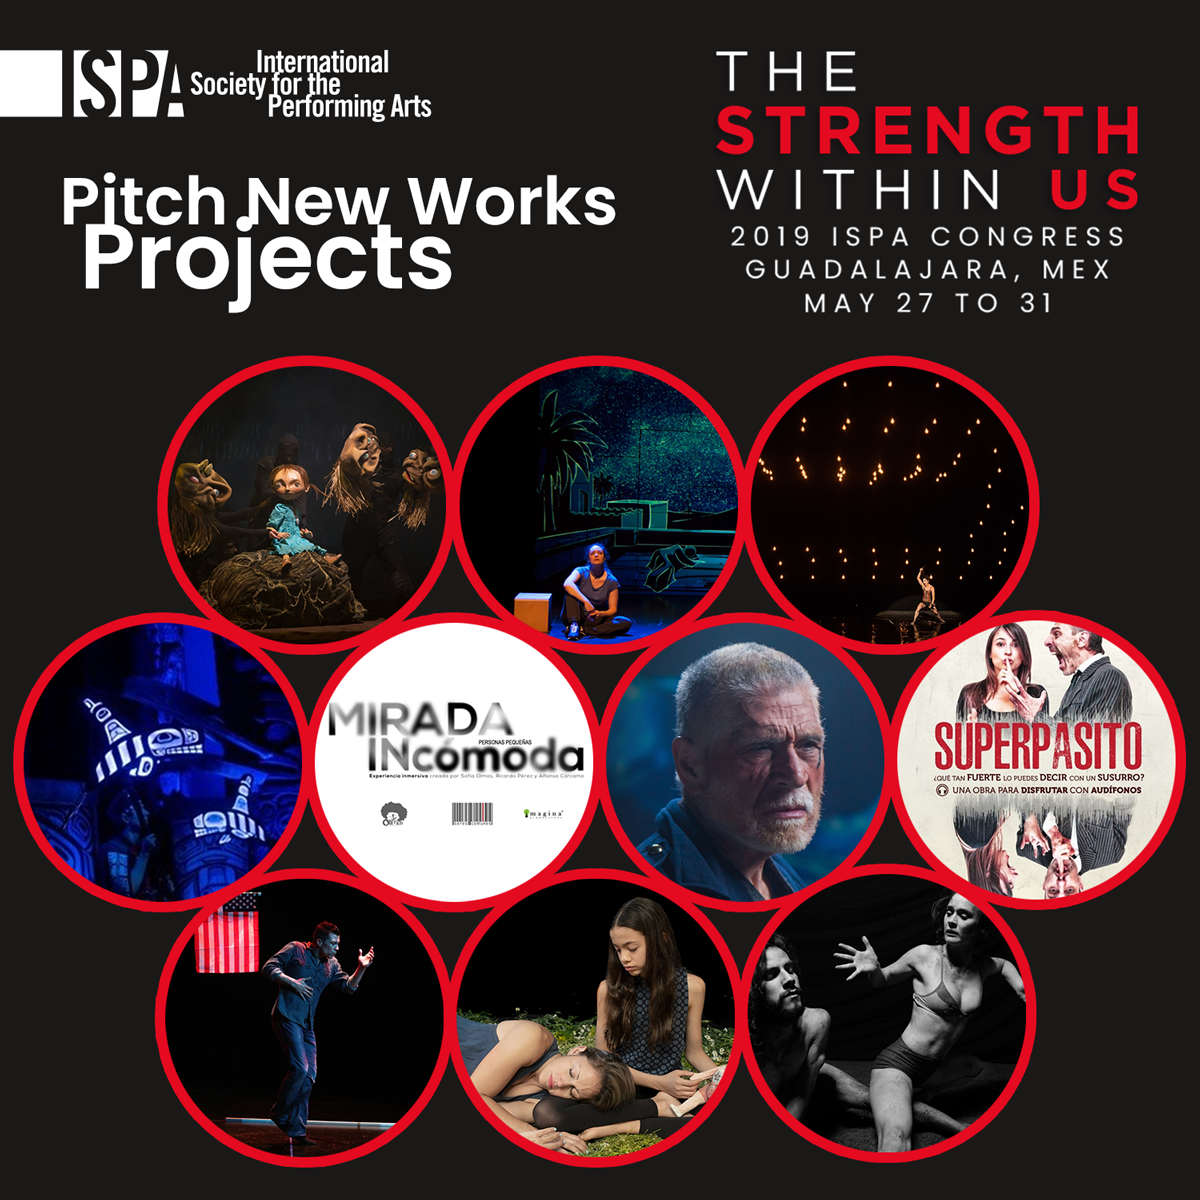 Pitch New Works Projects for the Guadalajara 2019 ISPA Congress